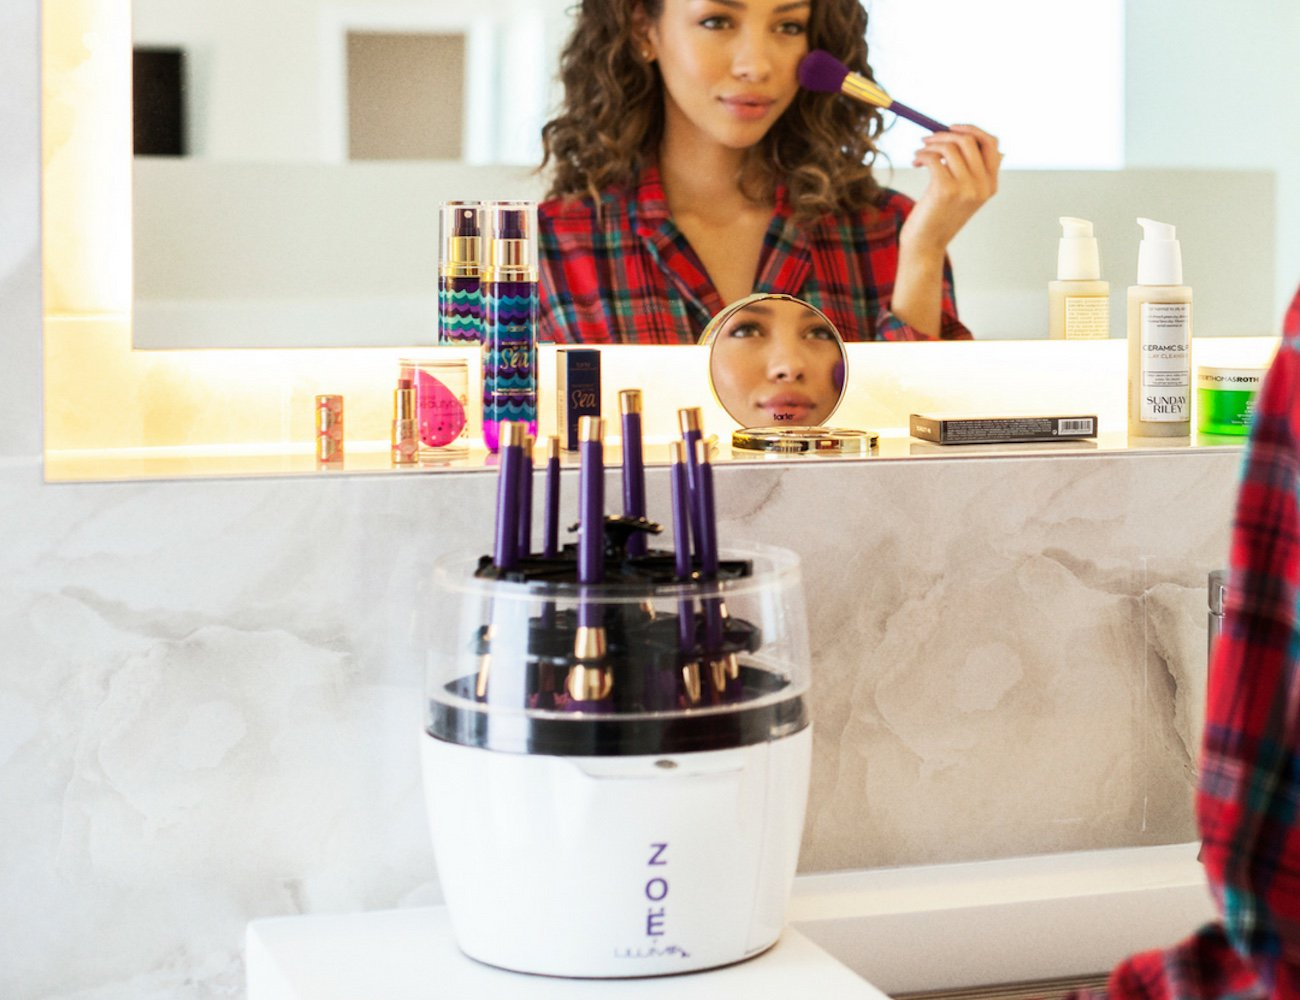 Zoë is the easy way to clean your makeup brushes